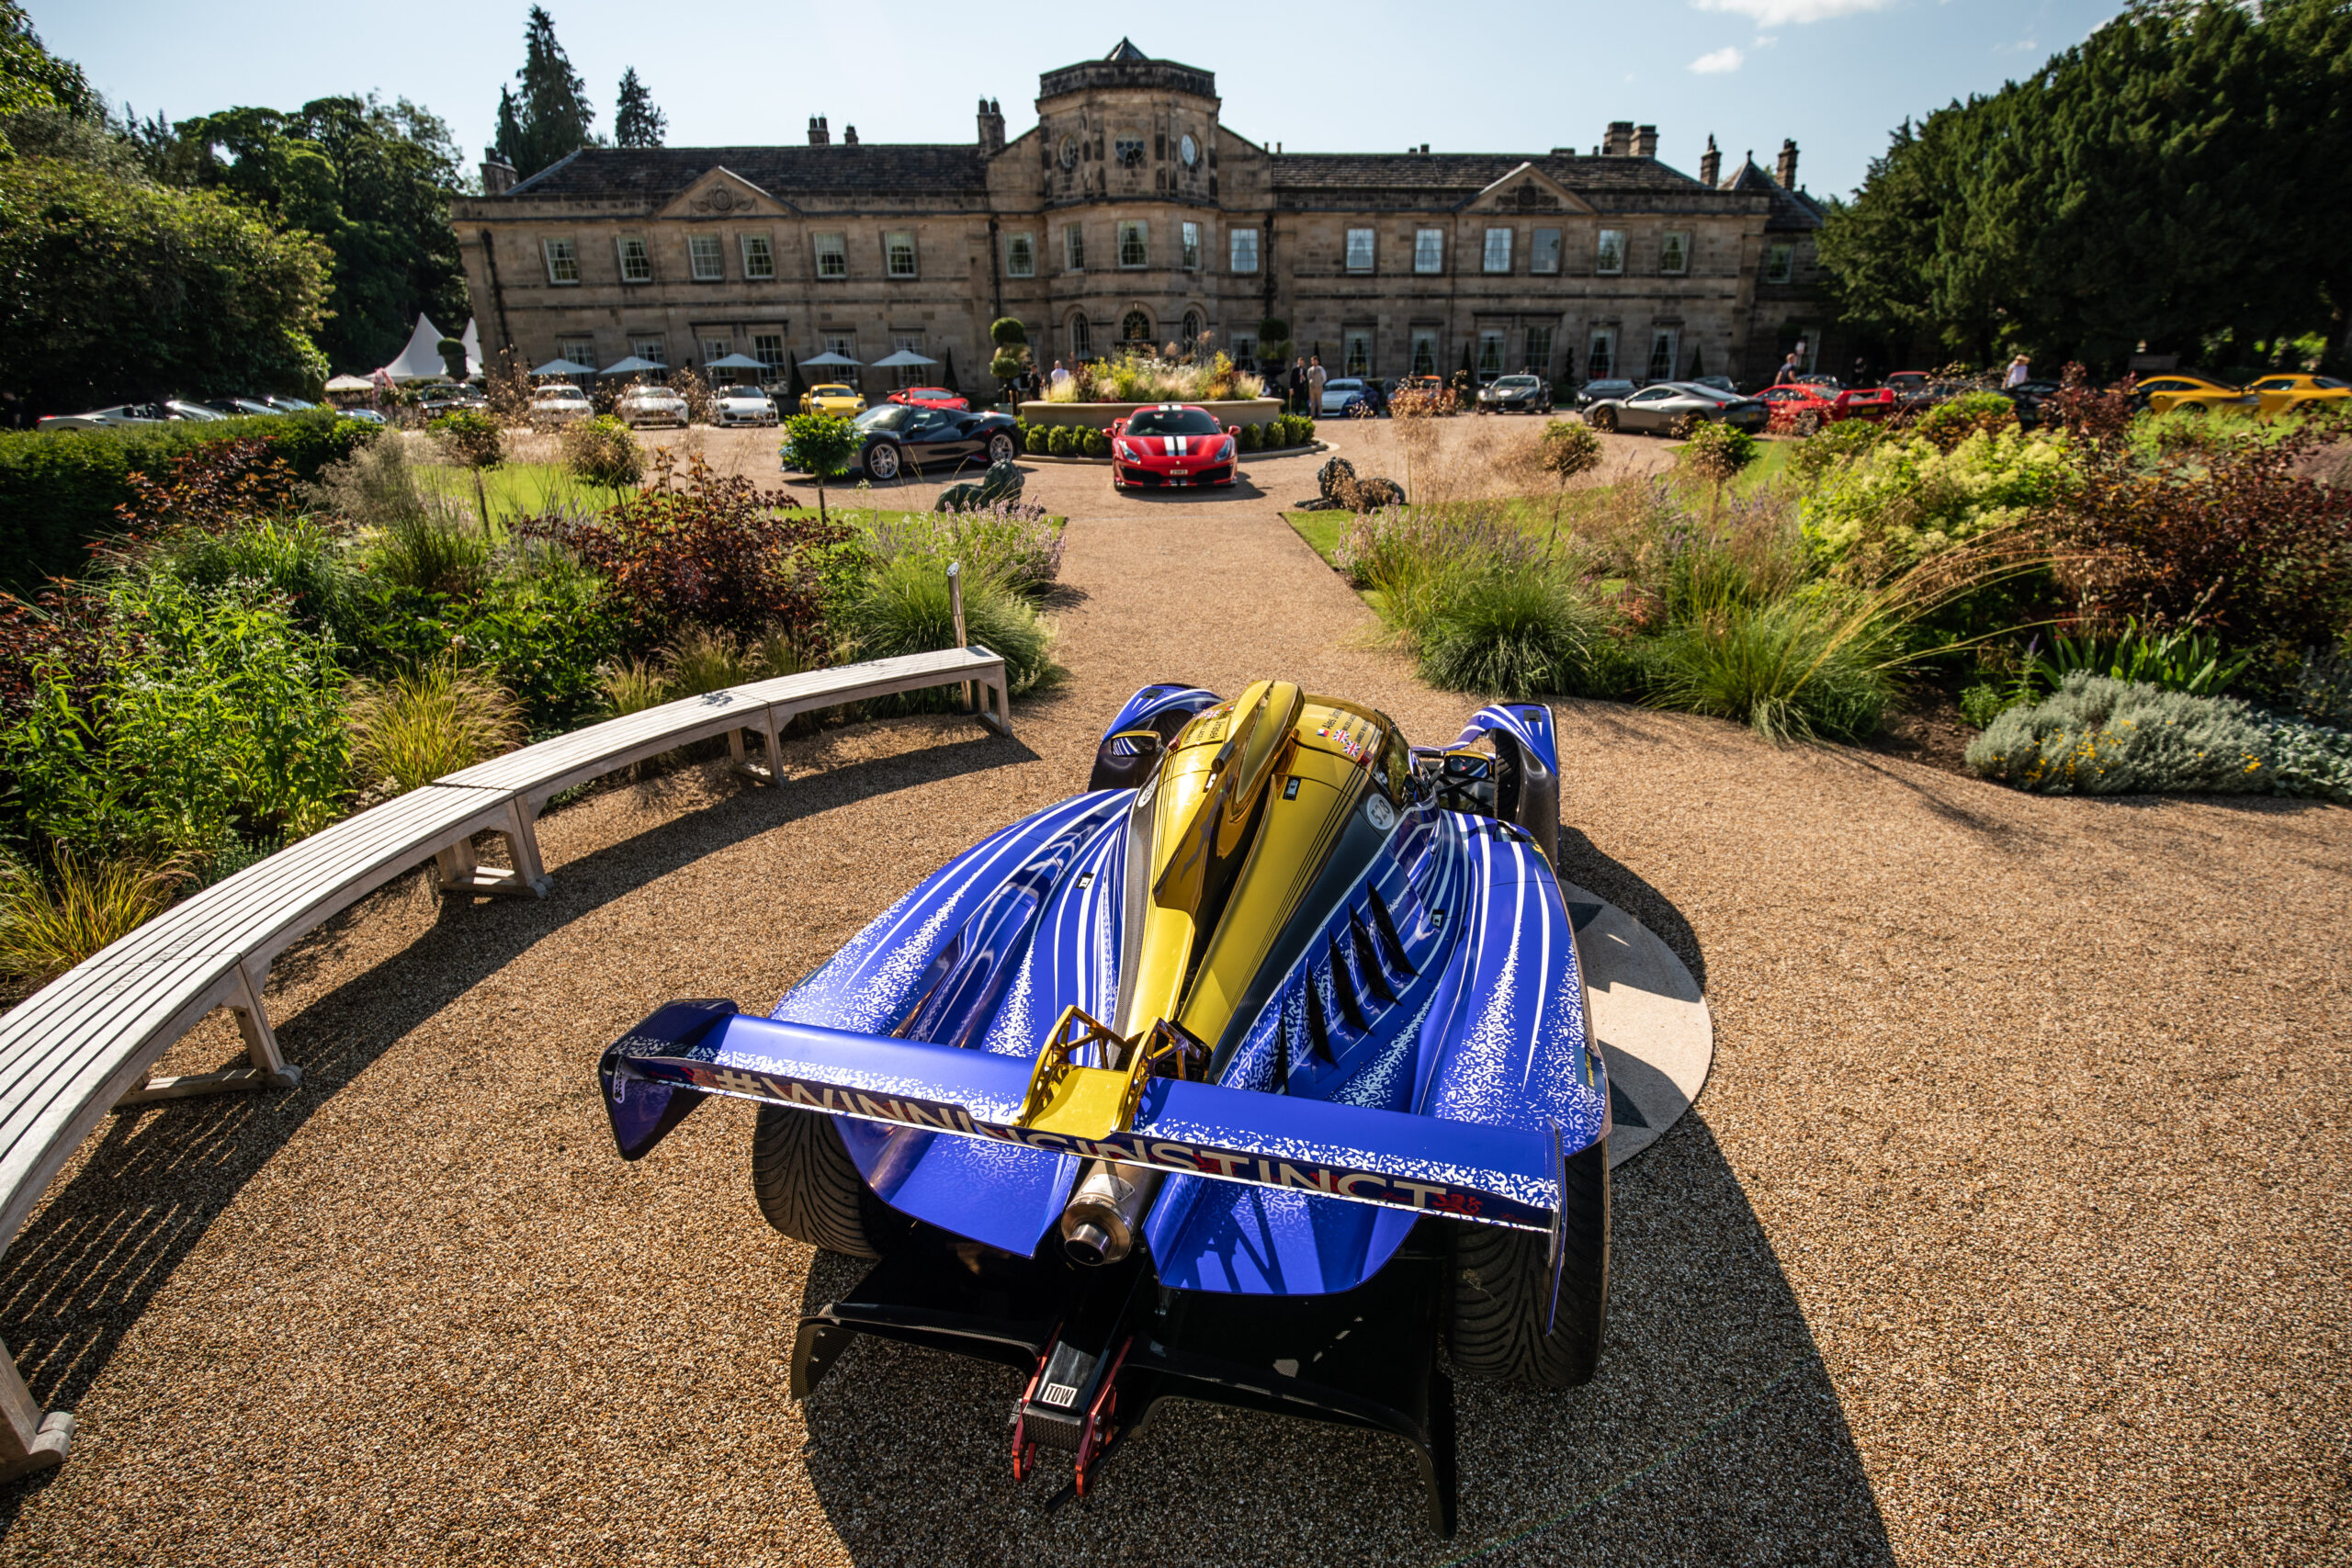 Praga Cars was privileged to attend SCD's grand summer social event at the amazing Grantley Hall